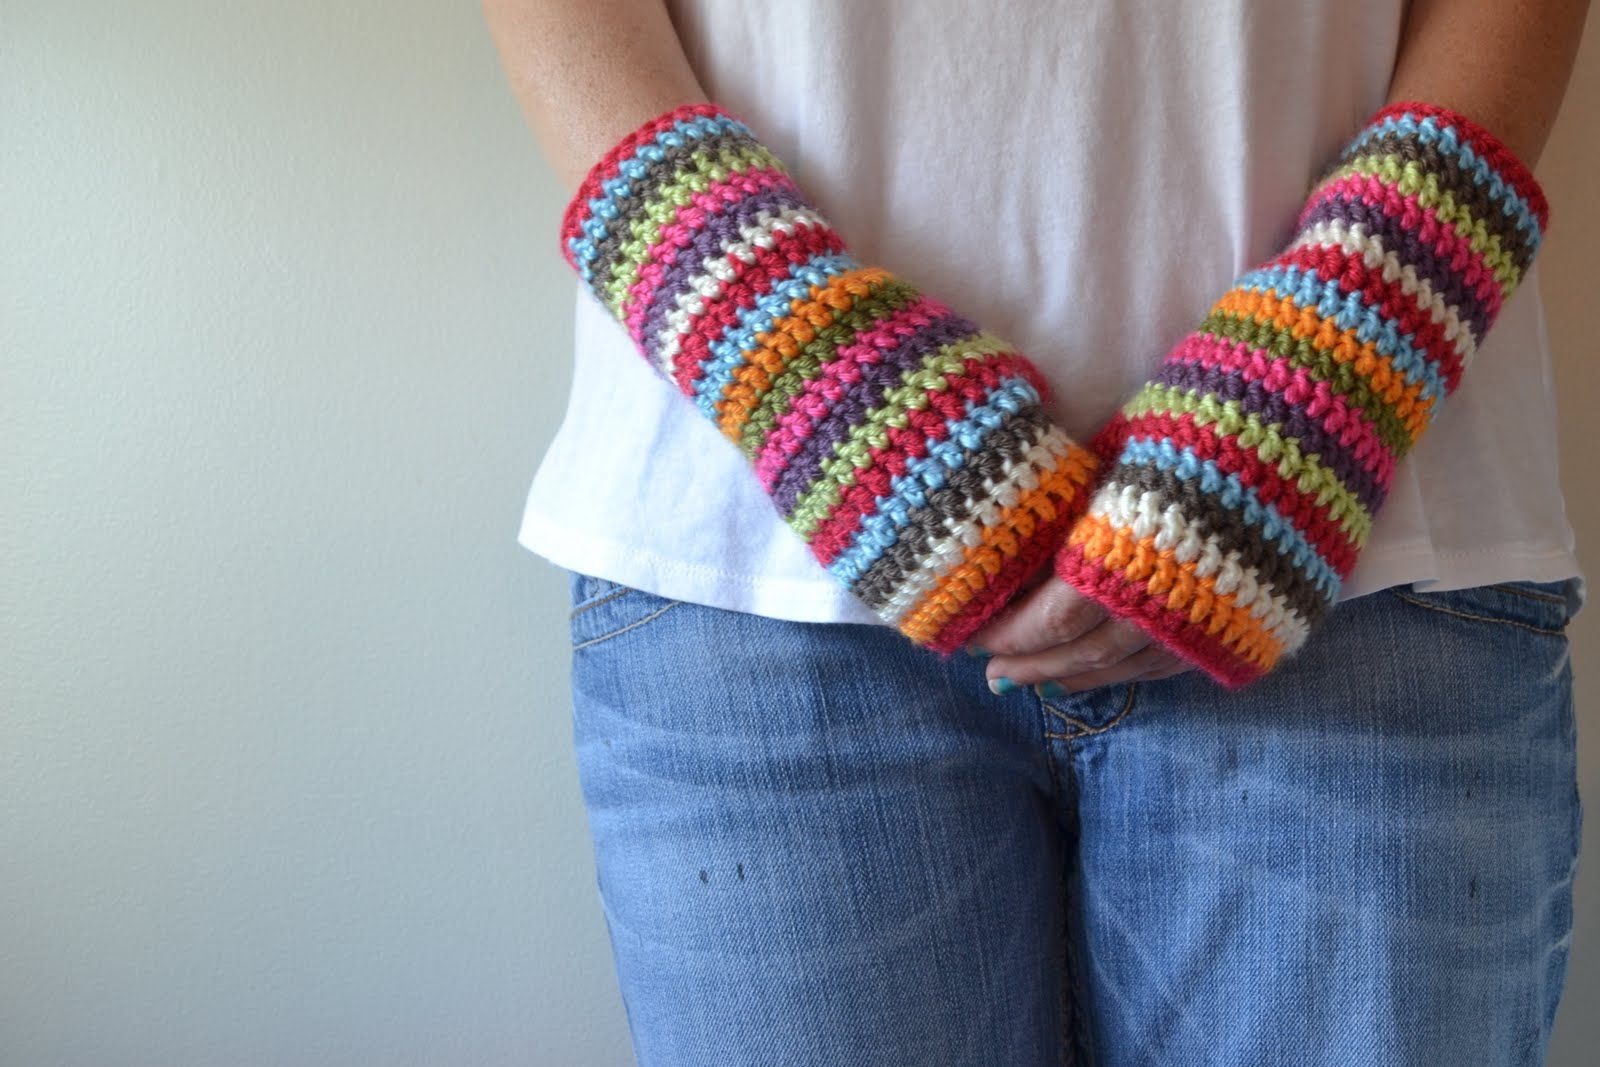 Crocheting Fingerless Gloves : Crochet in Color: Colorful Stripey Fingerless Mitts